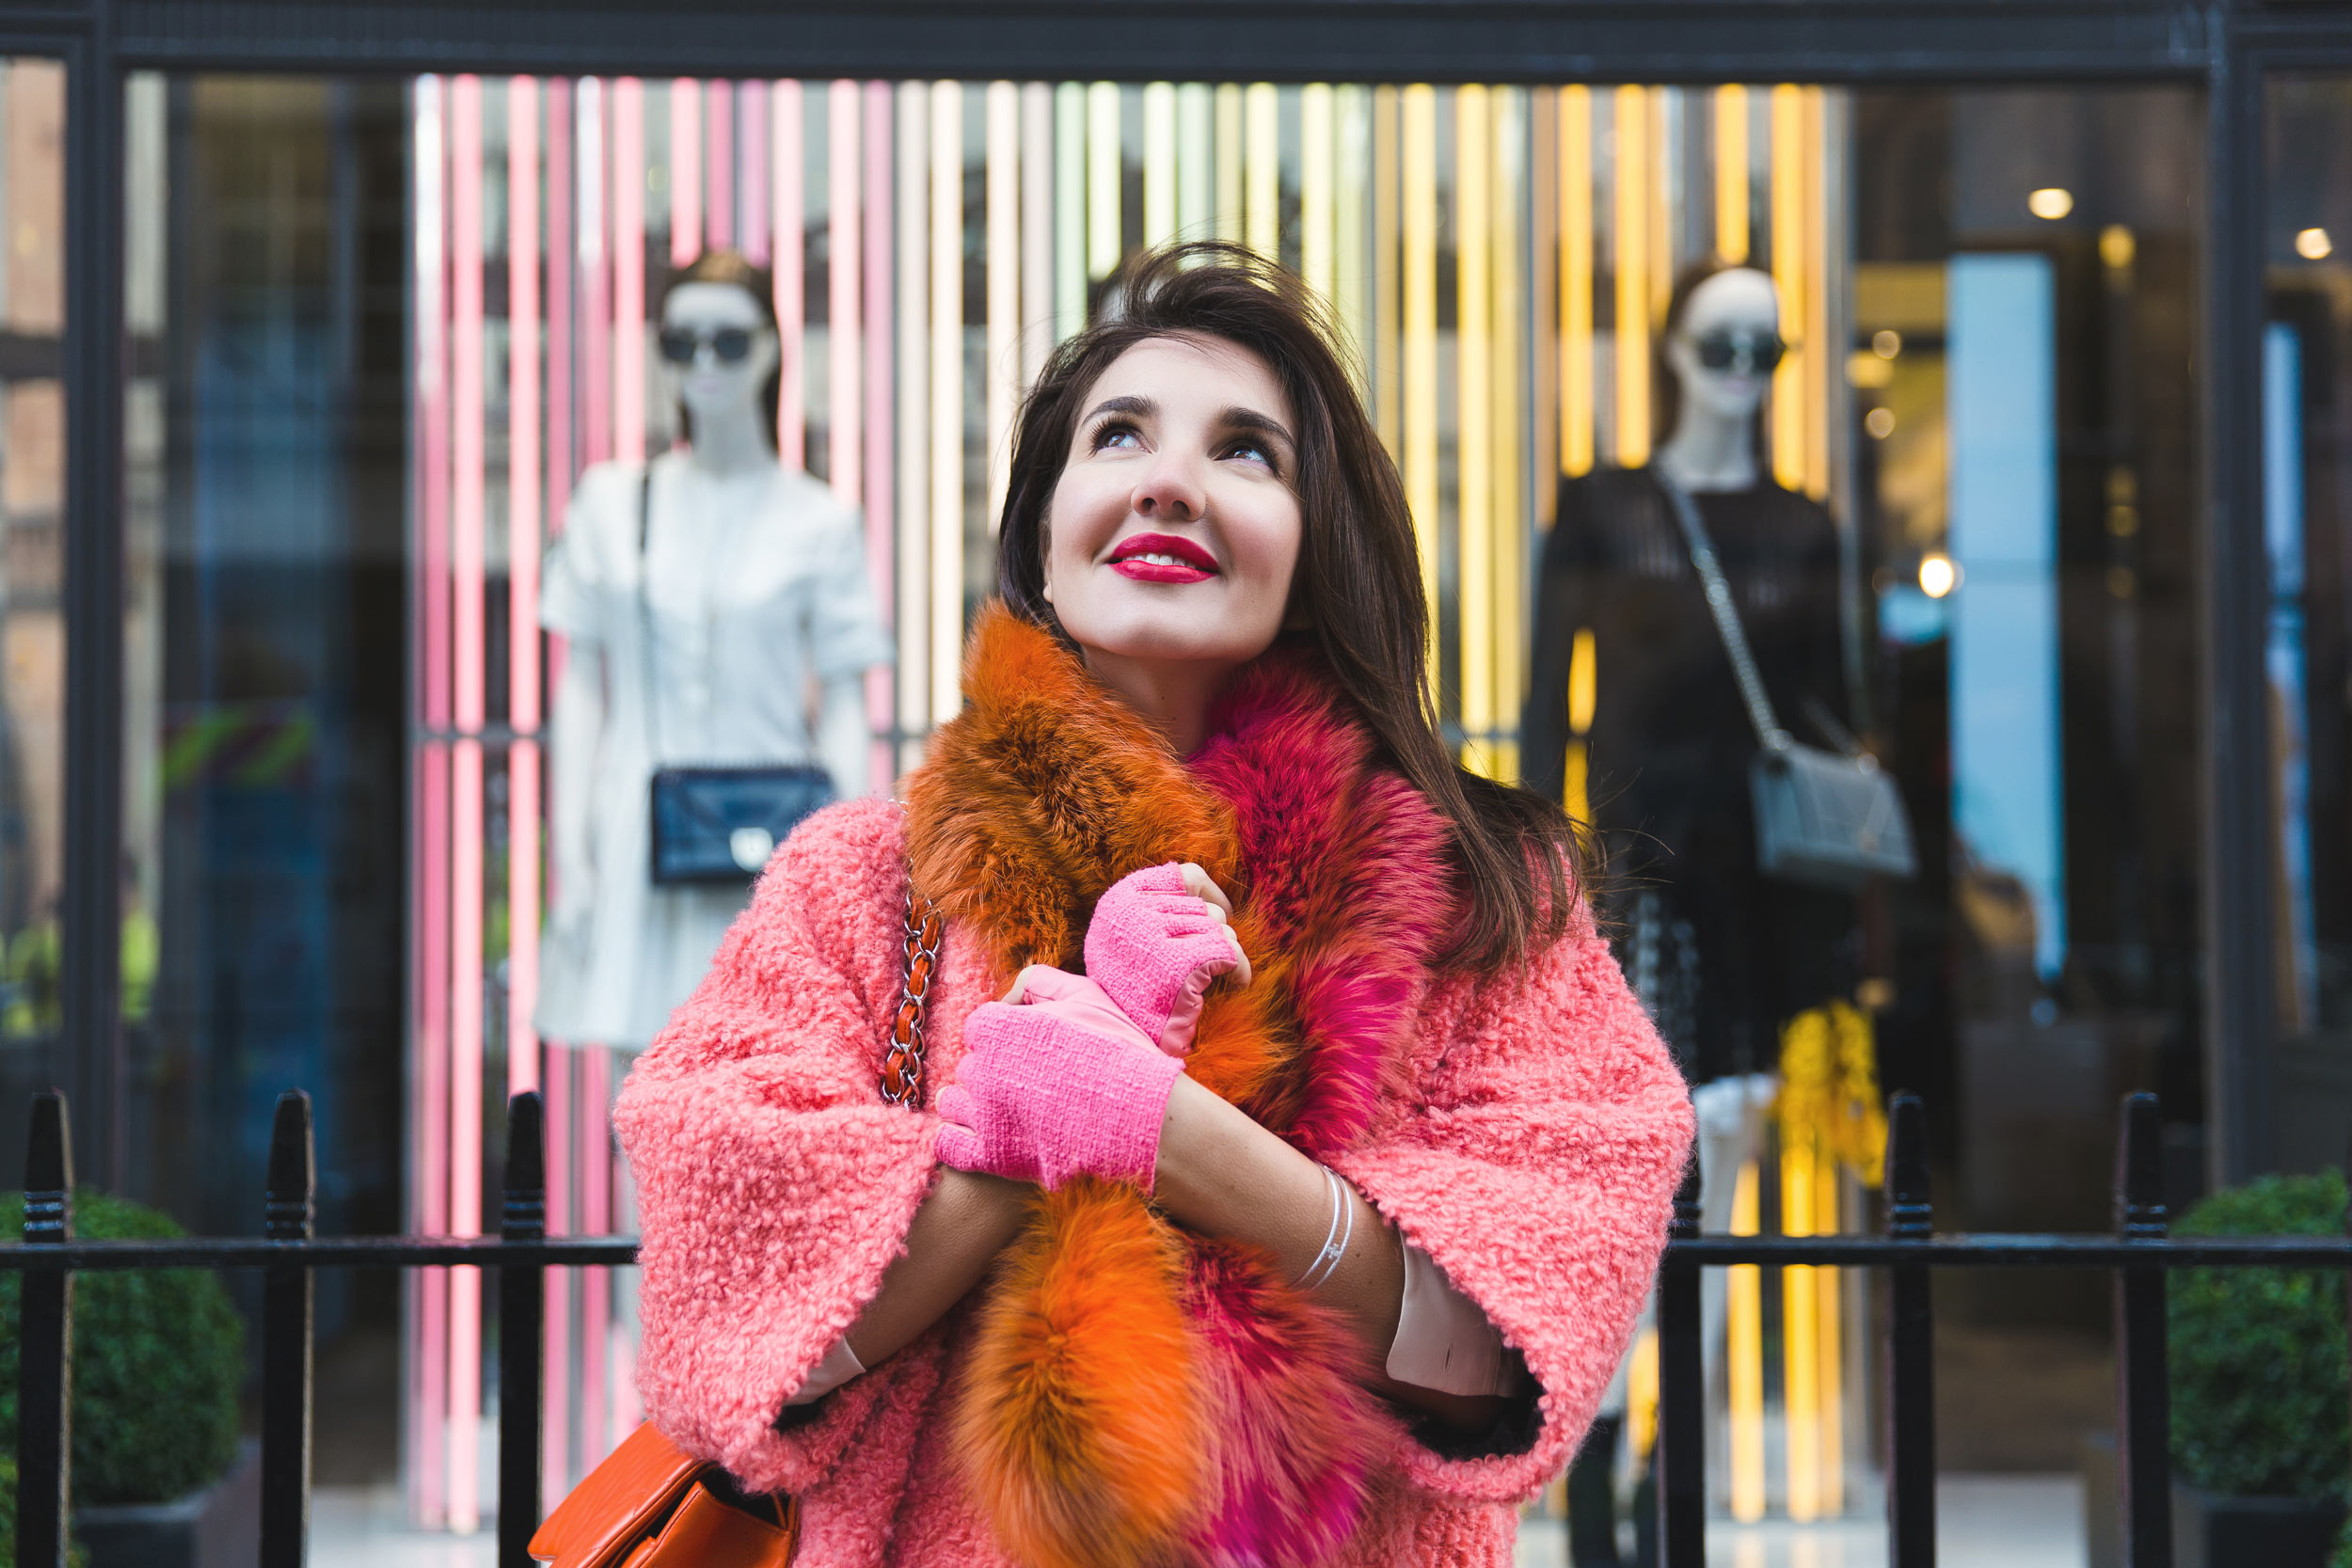 7 More Minutes. Fashion, travel and lifestyle blog by Alyona Gasimova. Colourblind. A Pop Of Colour This February. Pink Meets Orange. www.7moreminutes.com